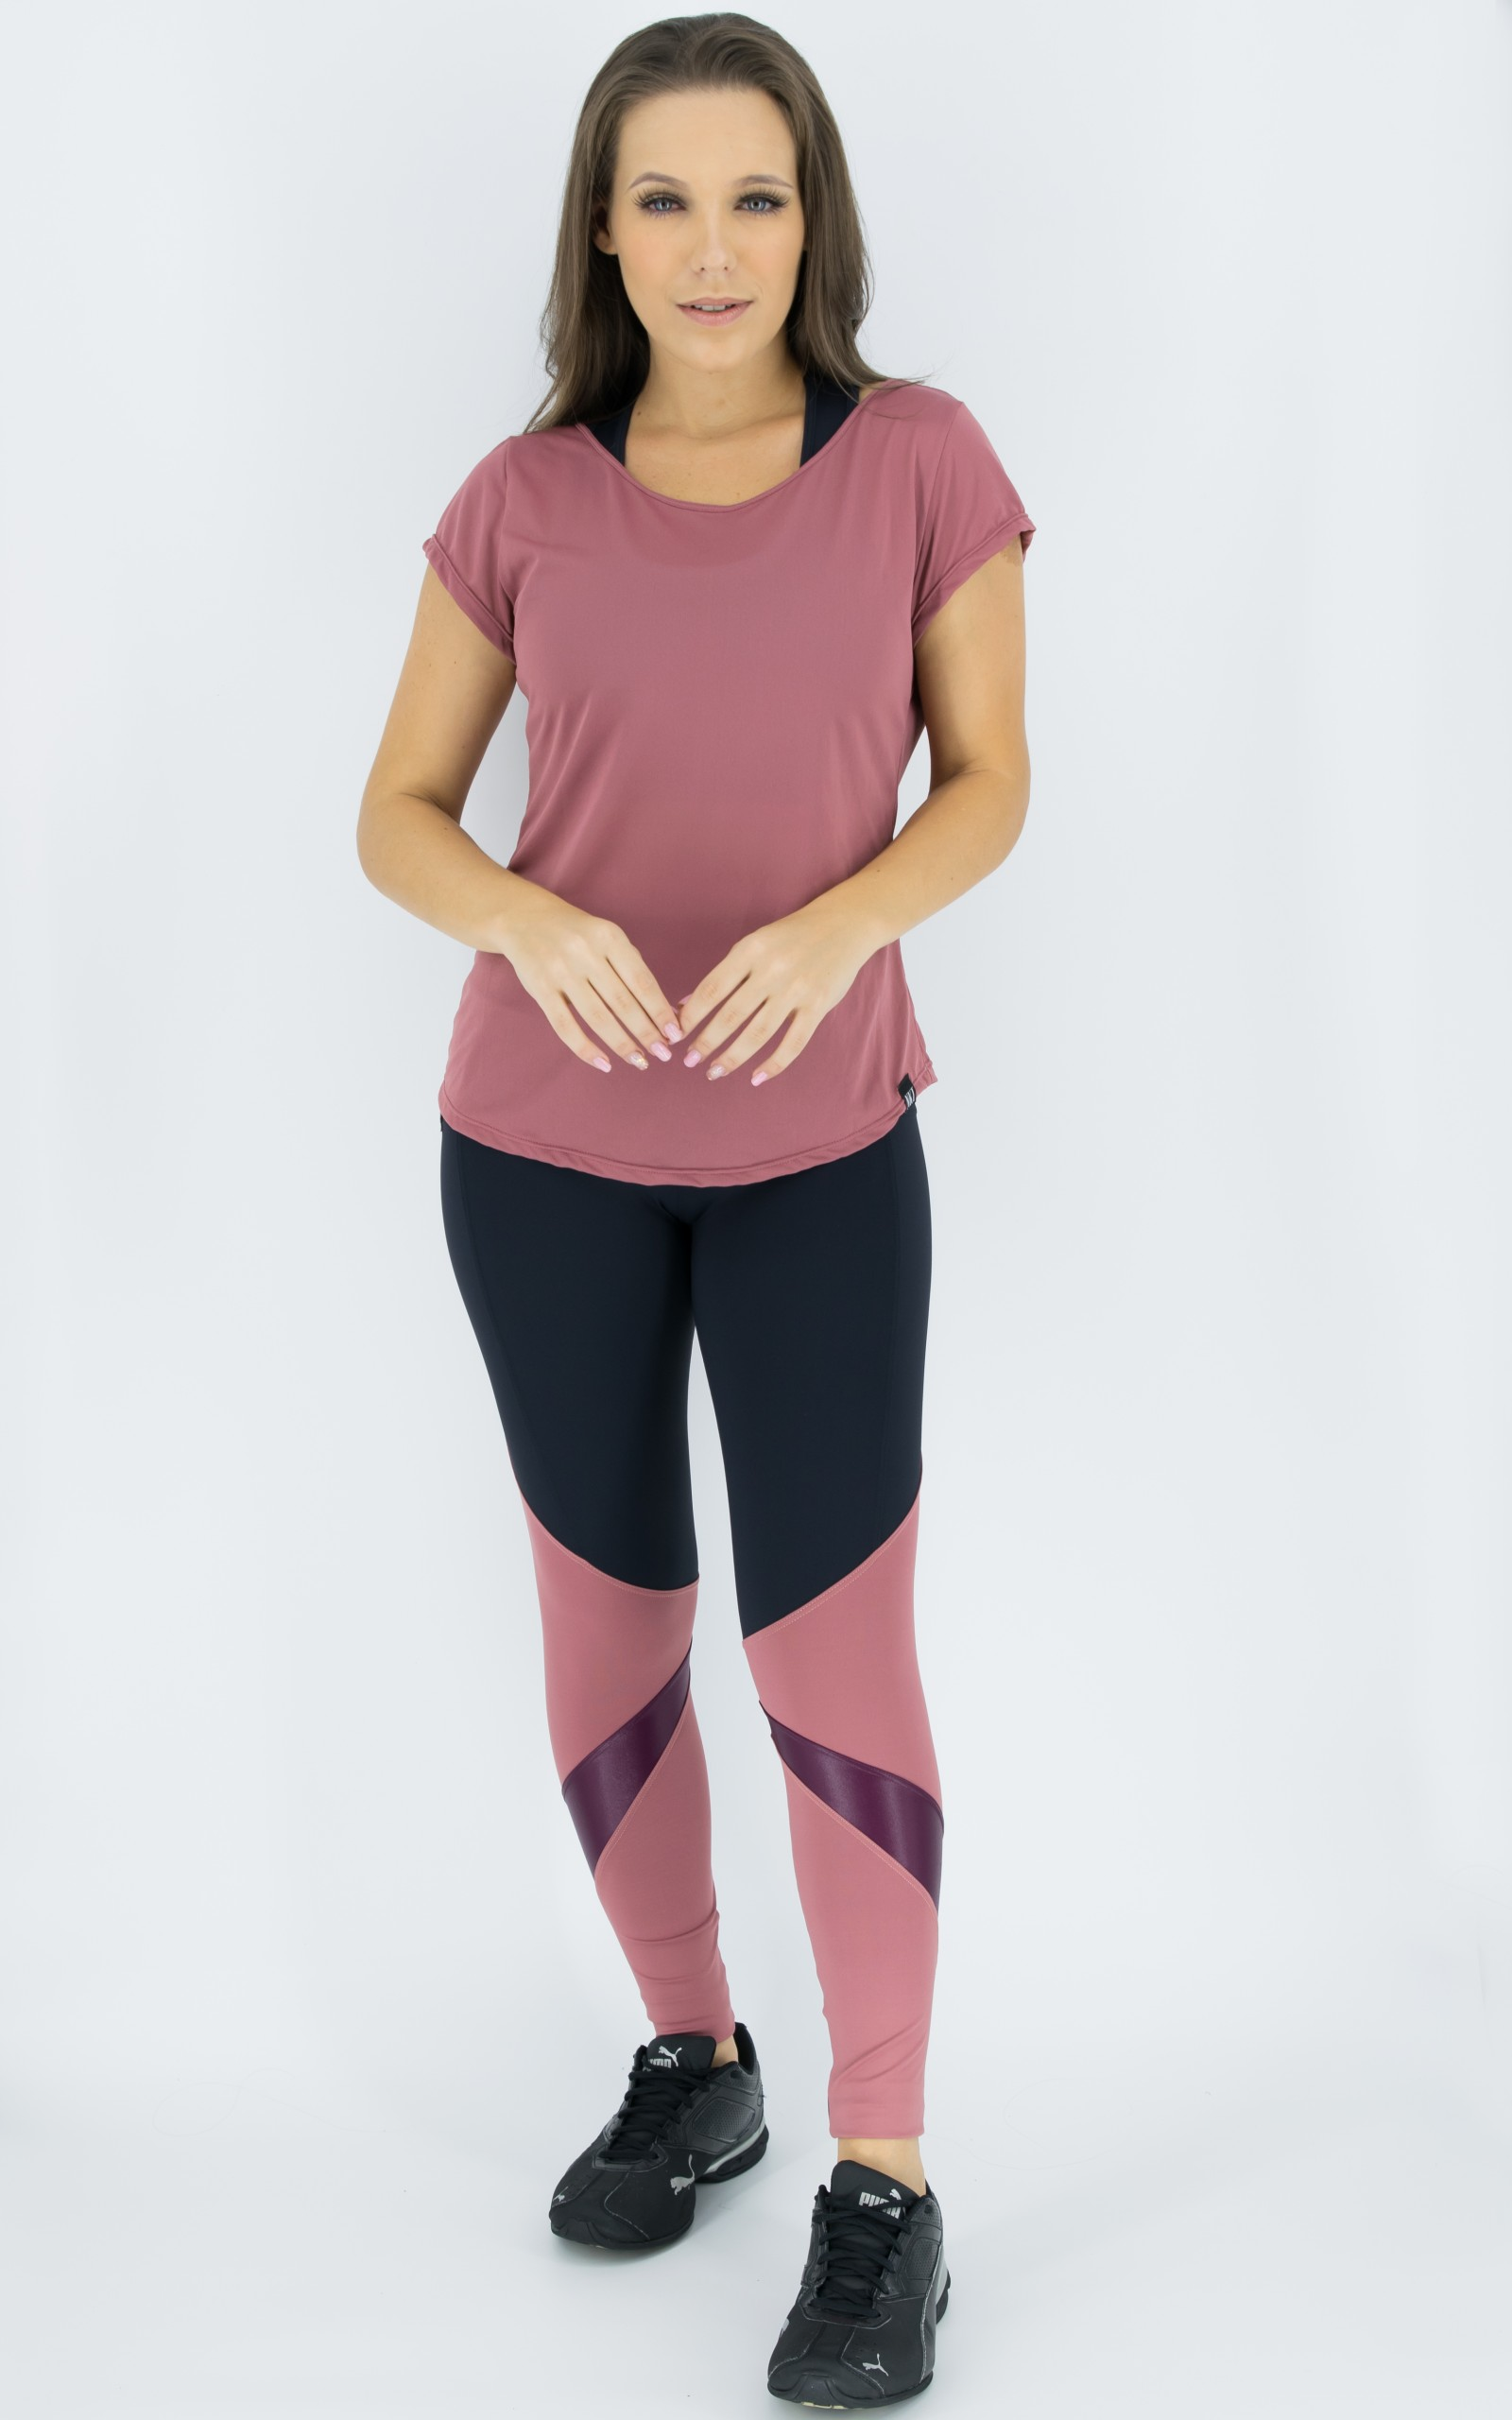 Legging Pratic Blush, Coleção Move Your Body - NKT Fitwear Moda Fitness